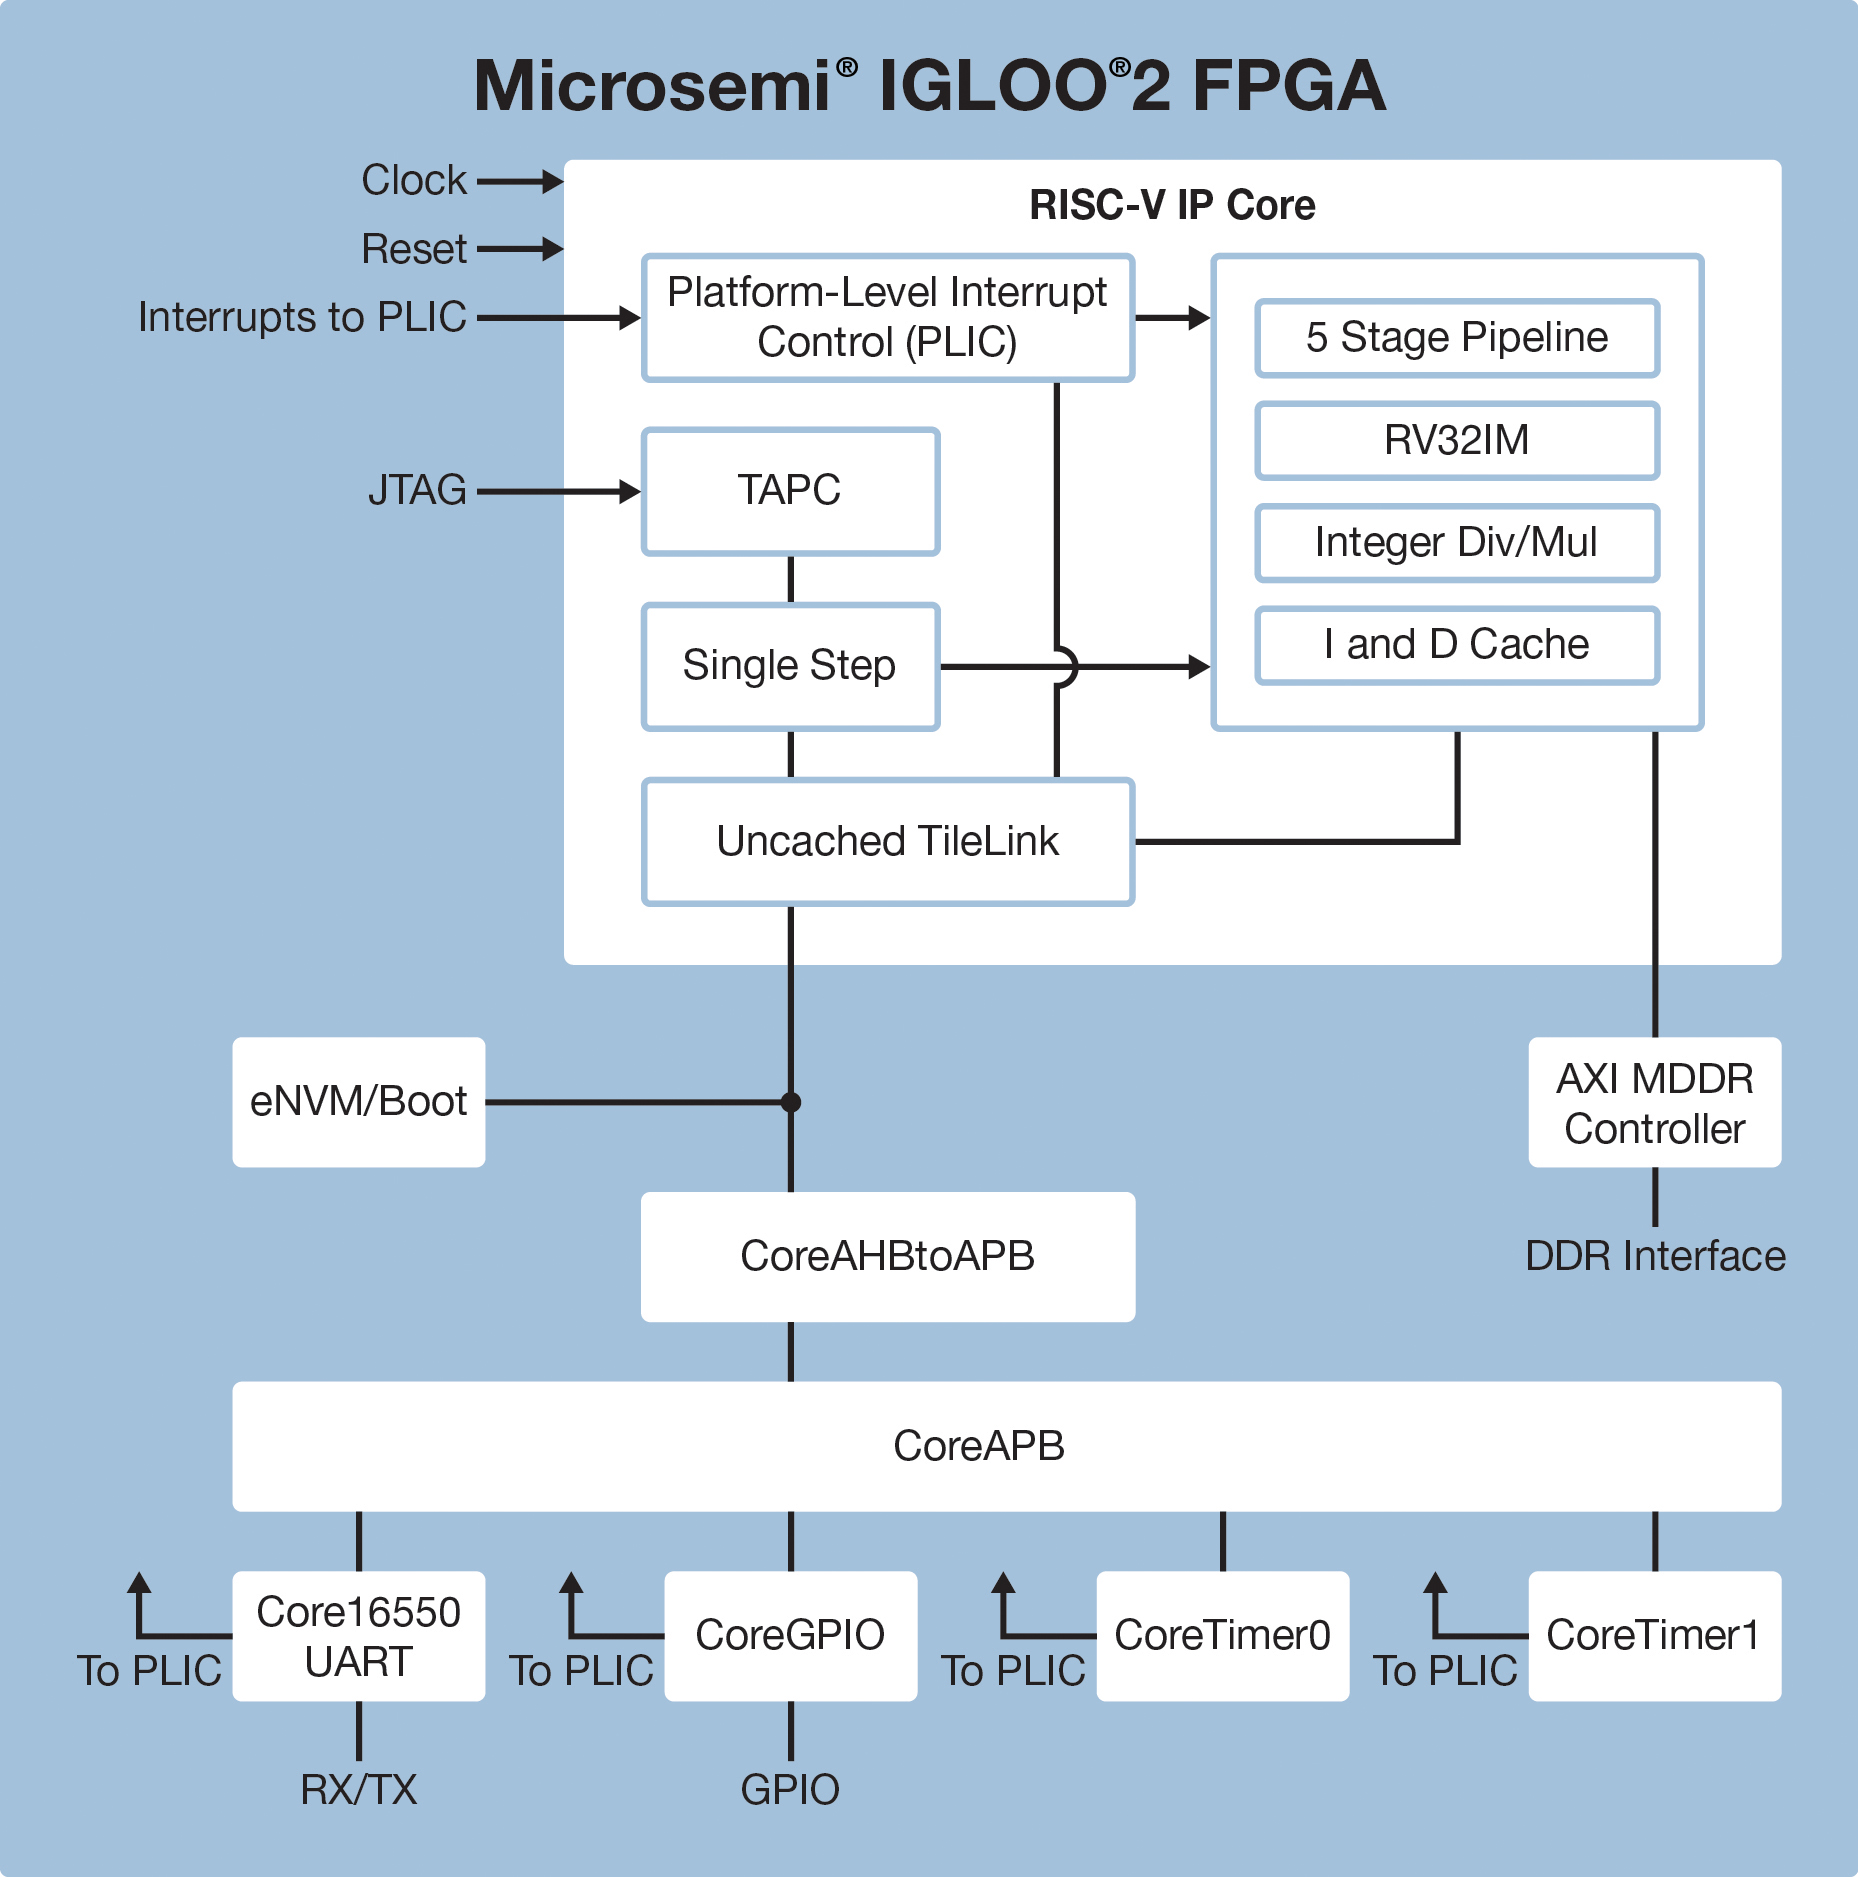 http://www.microsemi.com/images/soc/products/nav/processors/Microsemi_IGLOO2_RISC-V_Block_Diagram_2016_11.jpg